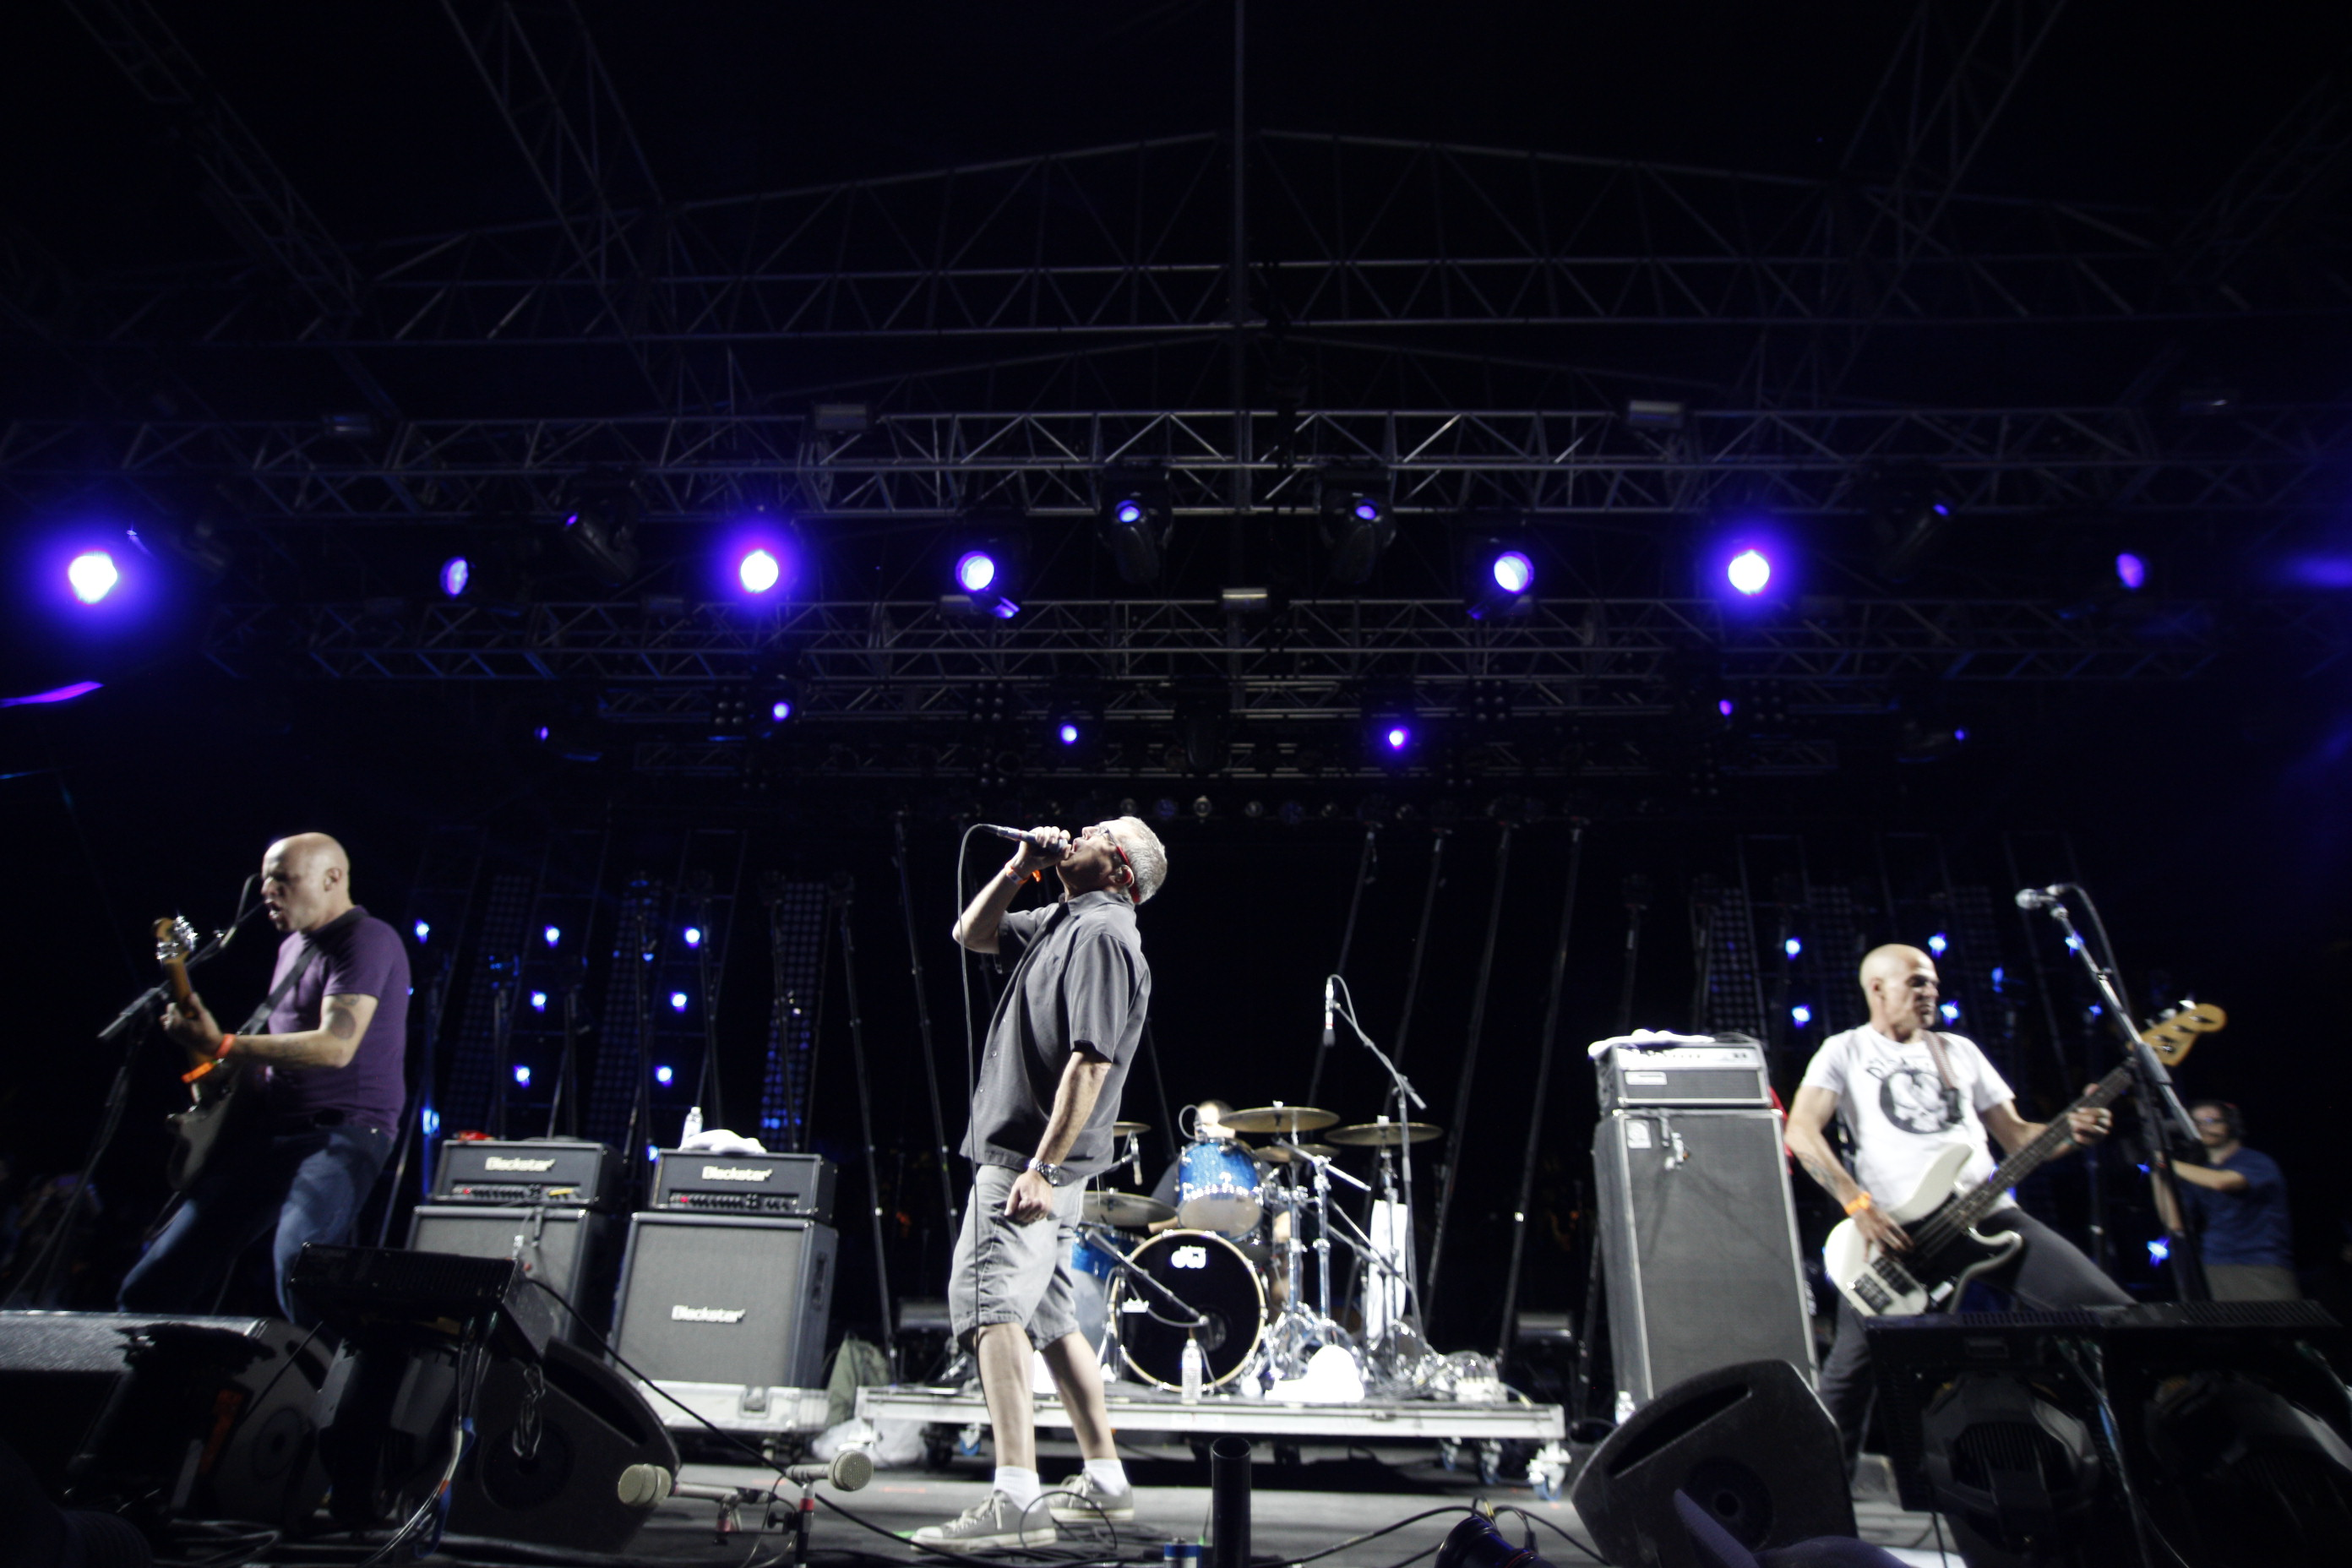 Punk Rock Bowling New Jersey Announces 2016 Lineup Featuring Descendents, Cock Sparrer And FLAG